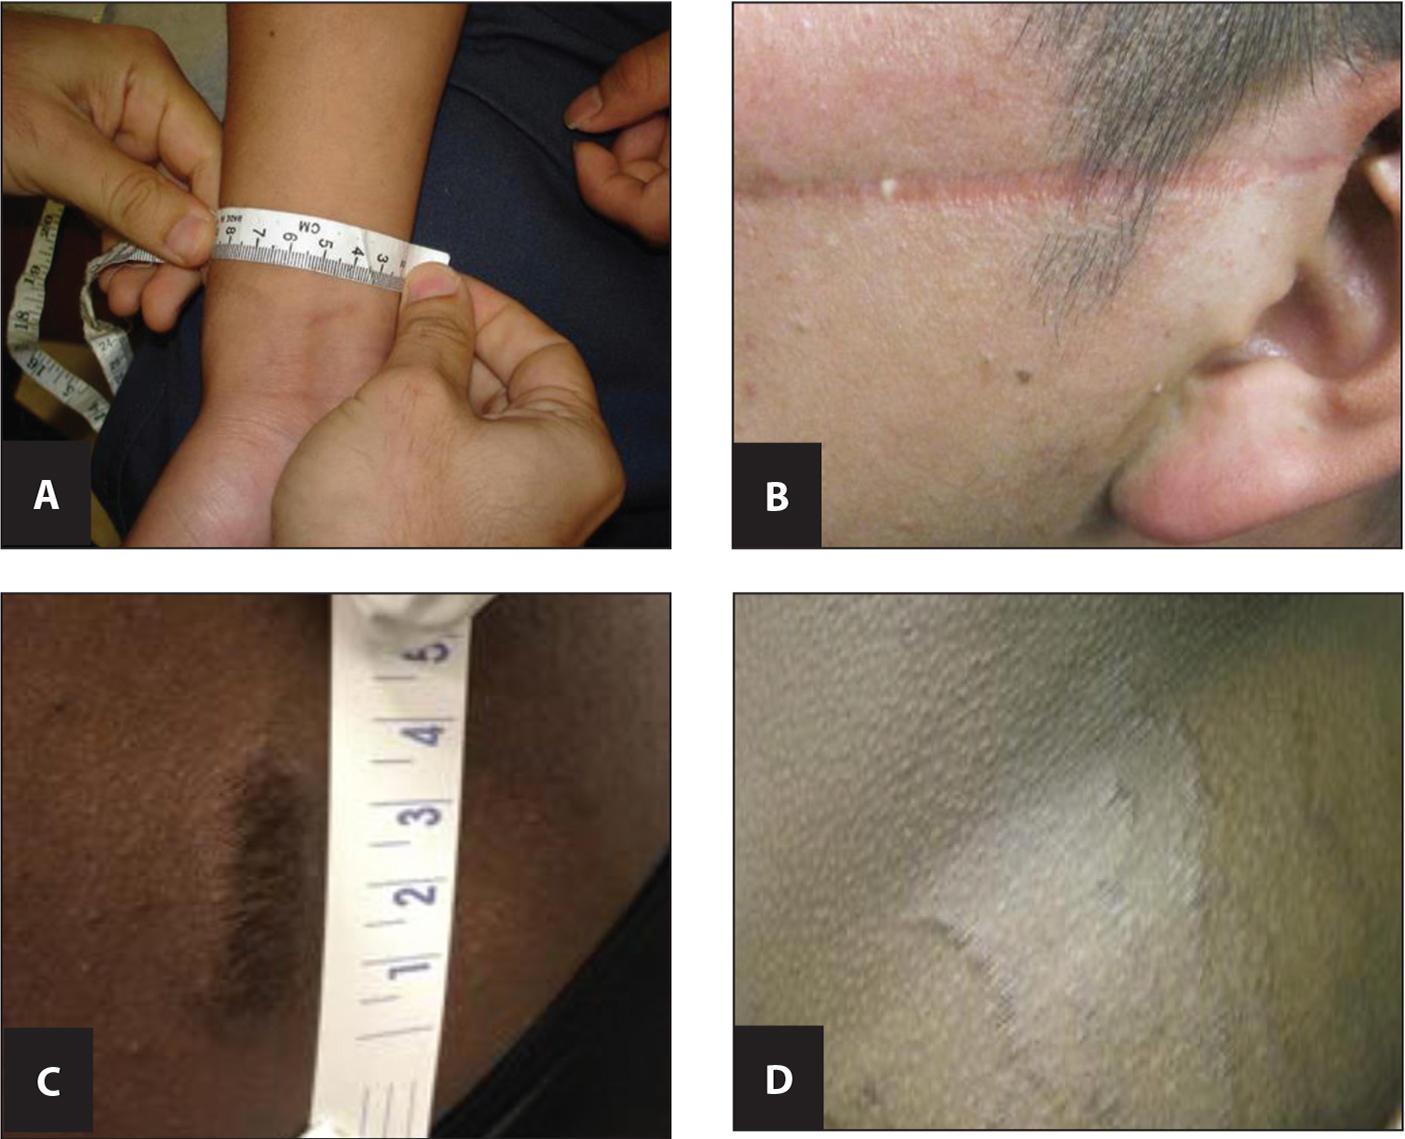 "Examples of an evaluator's impressions of the degree of consistency of physical examination findings with reported mechanism of injury using standard classification provided by the Istanbul Protocol.7 (A) Asylum applicant reported being tied up with a plastic zip tie (classification: ""diagnostic of""). (b) Asylum applicant reported a laceration of the face and ear from a large knife repaired with sutures. (classification: ""highly consistent""). (C) Asylum applicant reported a laceration from being beaten with a stick (classification: ""consistent"". (D) Asylum applicant reported these were stretch marks unrelated to abuse (classification: ""not consistent"")."